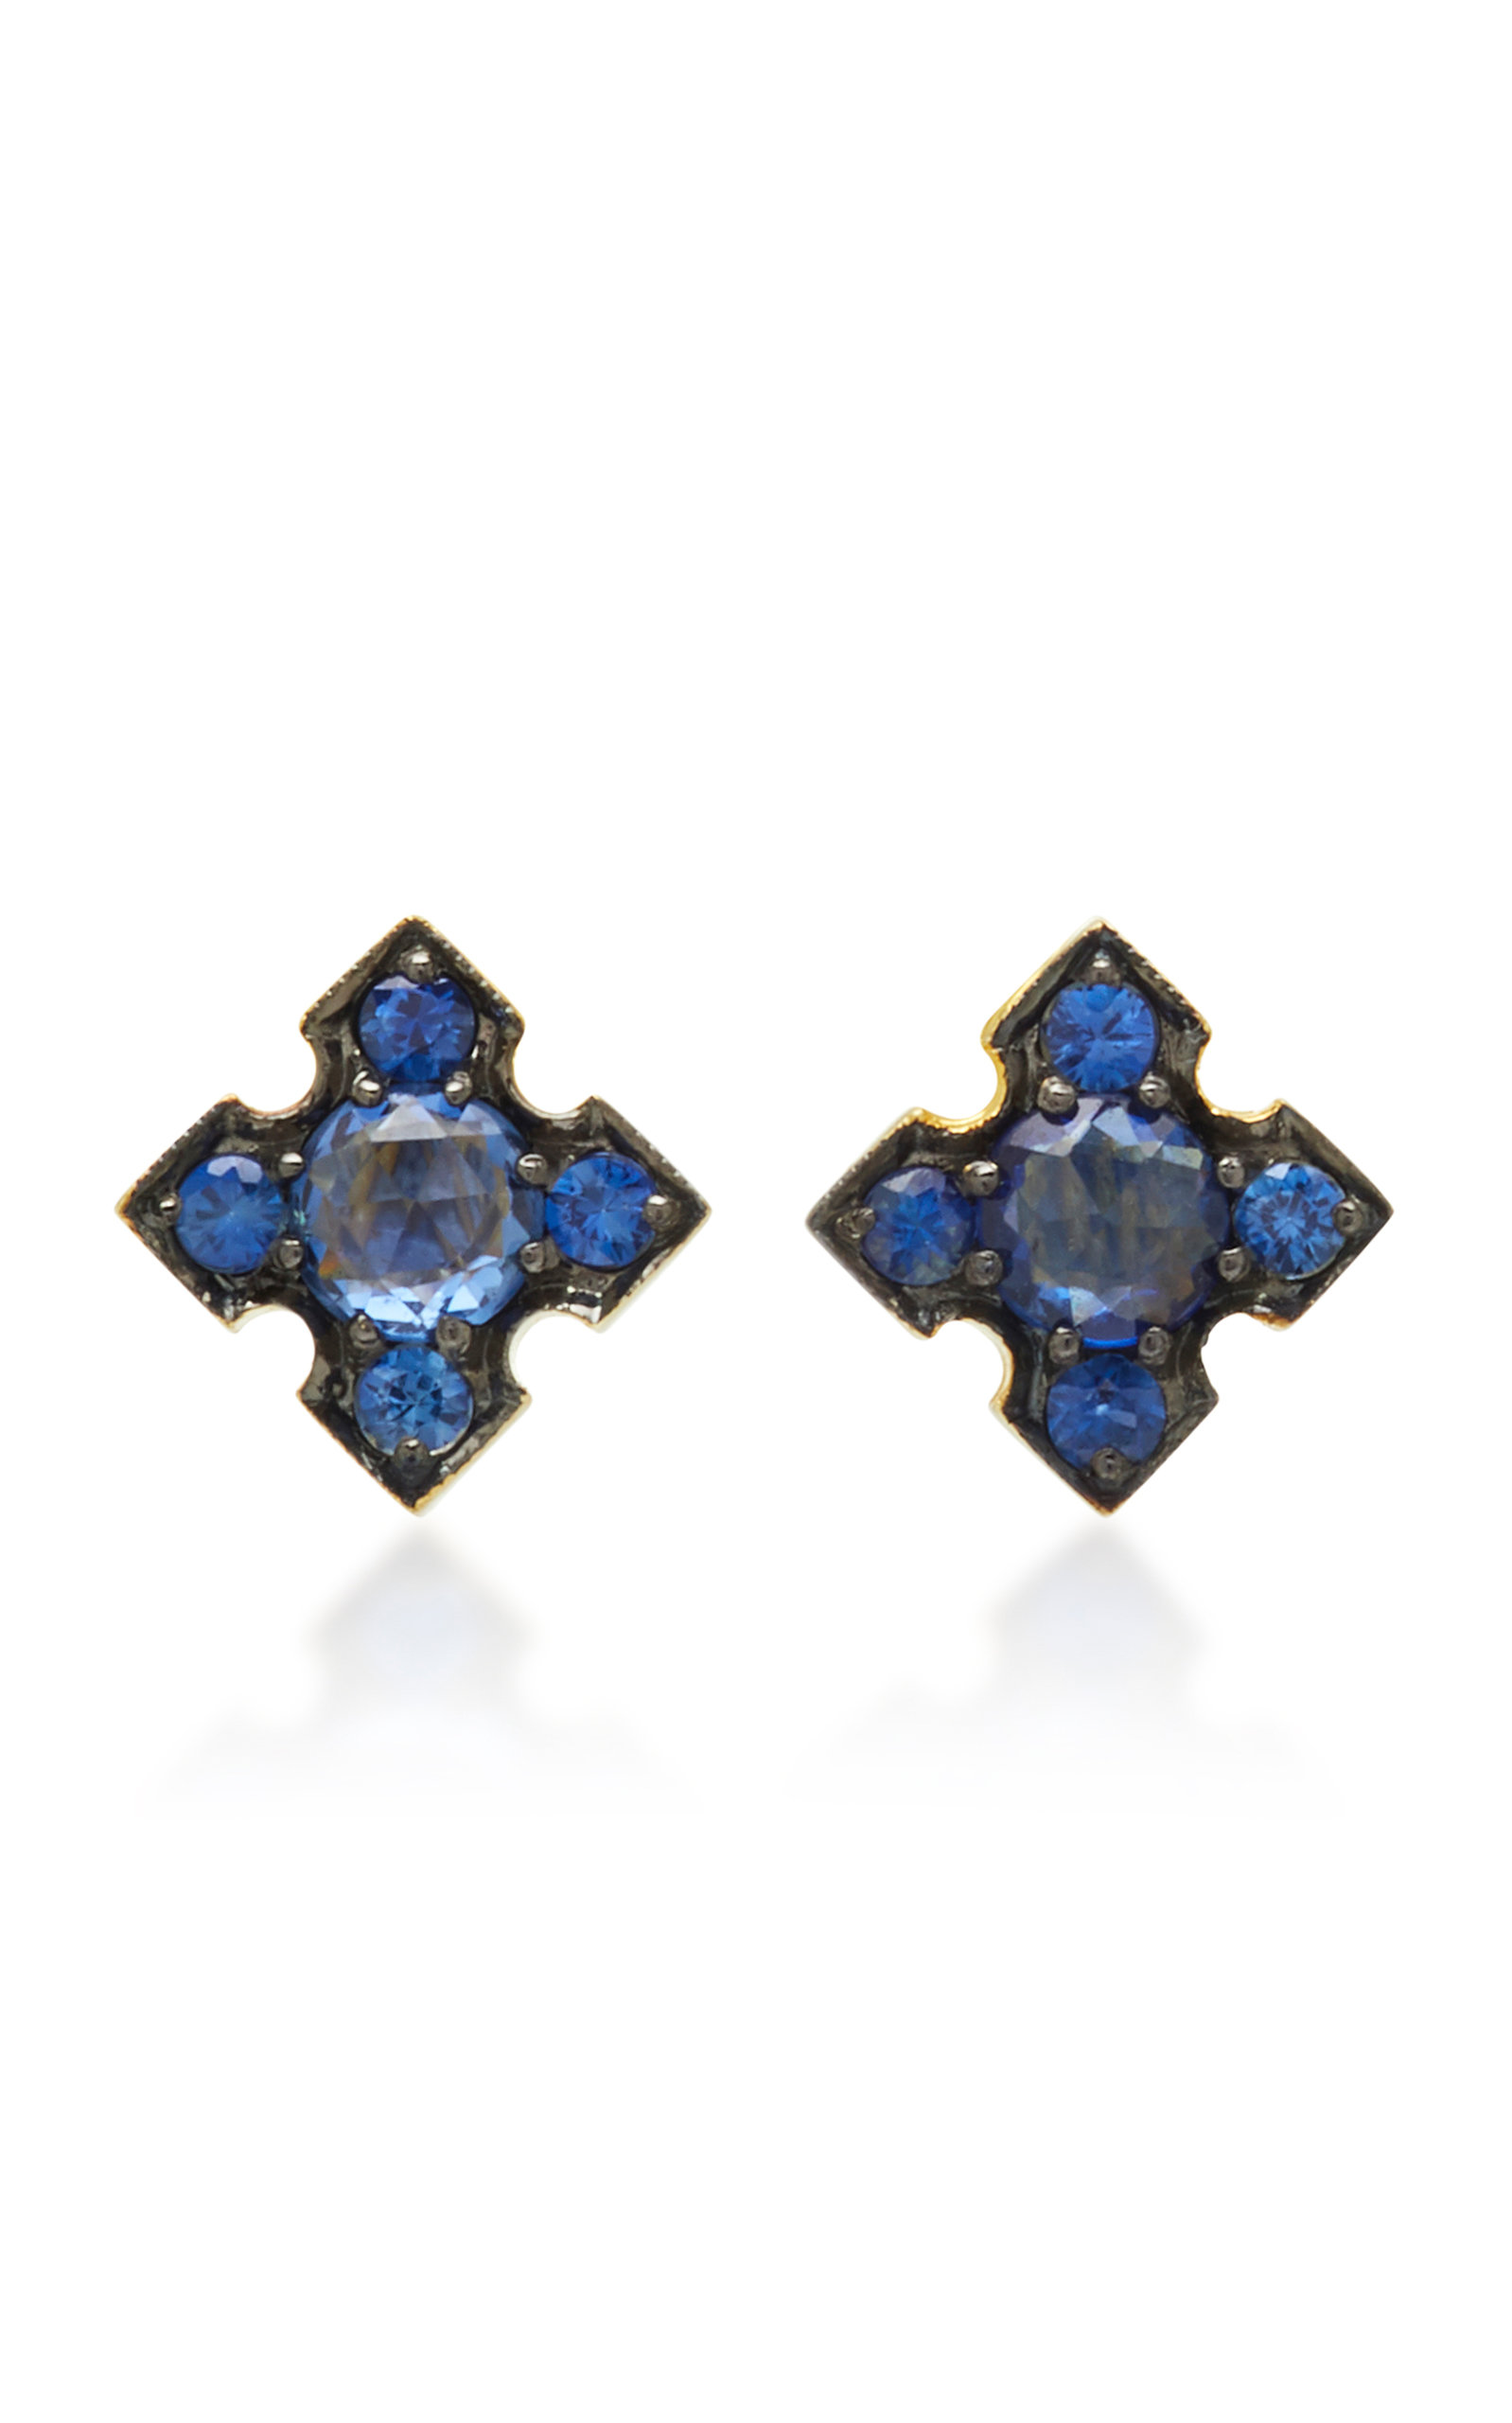 ILA IGAFE 14K GOLD BLUE SAPPHIRE STUD EARRINGS